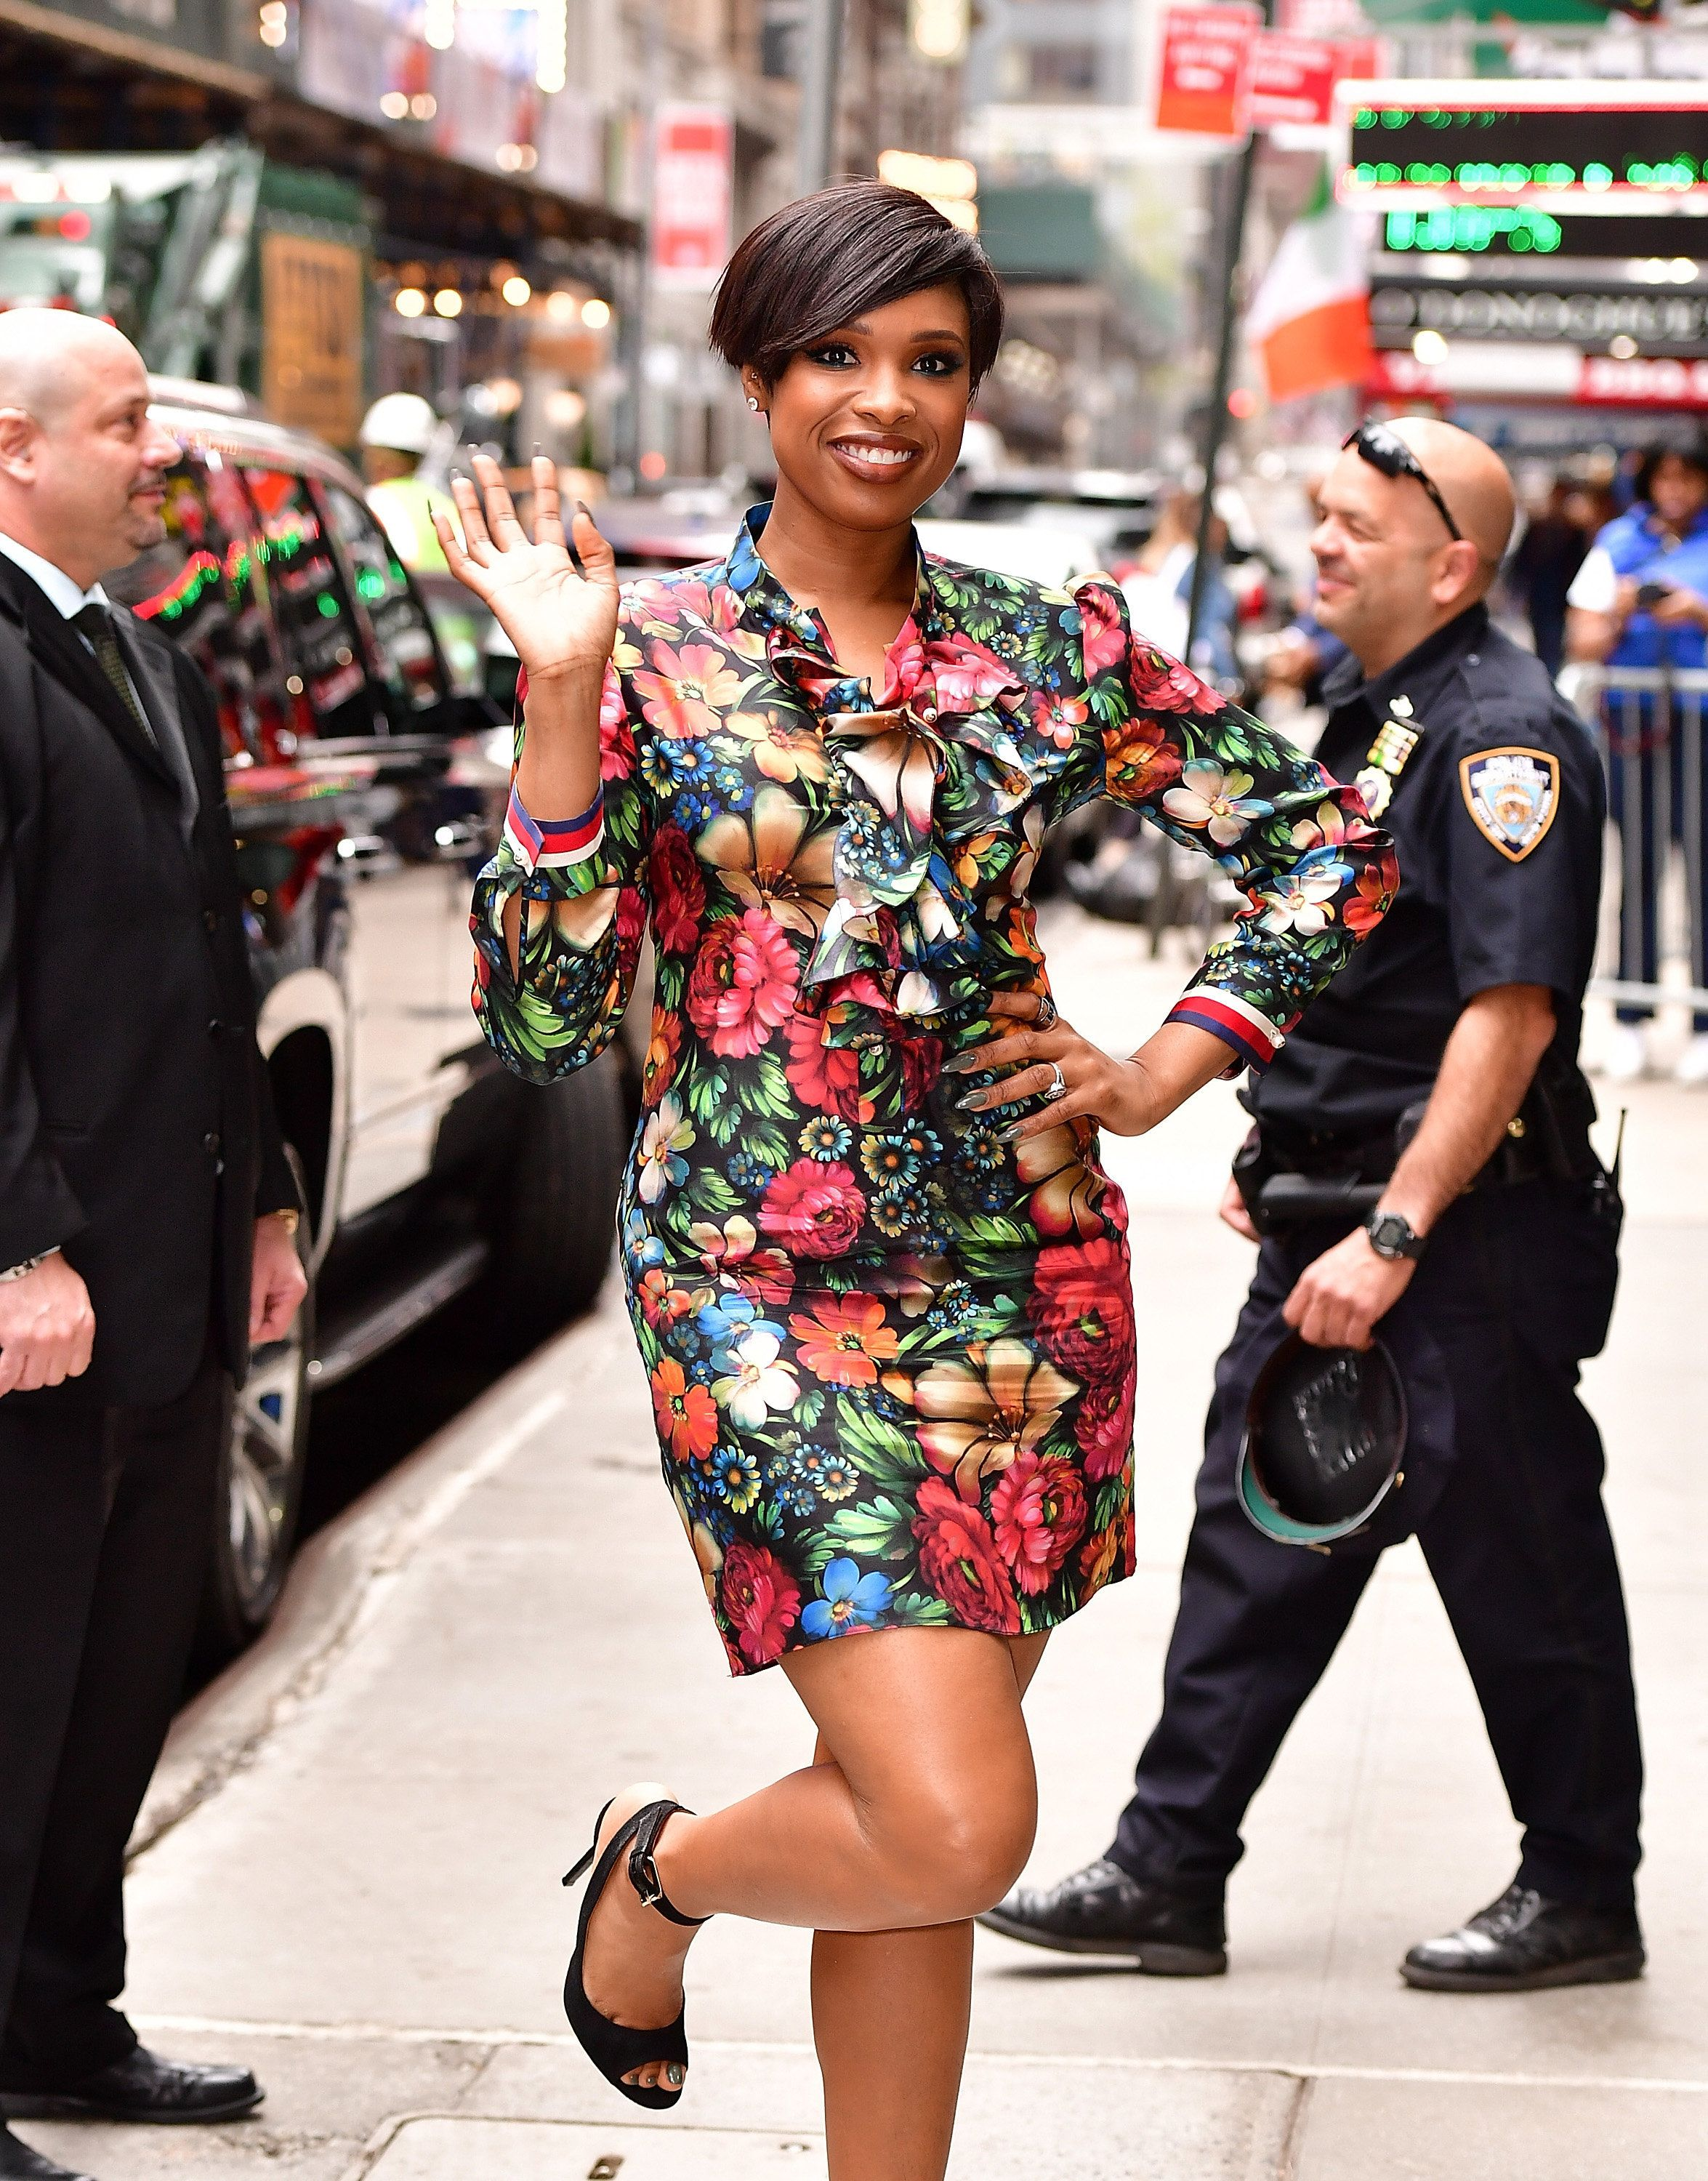 NEW YORK, NY - APRIL 17:  Jennifer Hudson leaves ABC's 'Good Morning America' in Times Square on April 17, 2017 in New York City.  (Photo by James Devaney/GC Images)